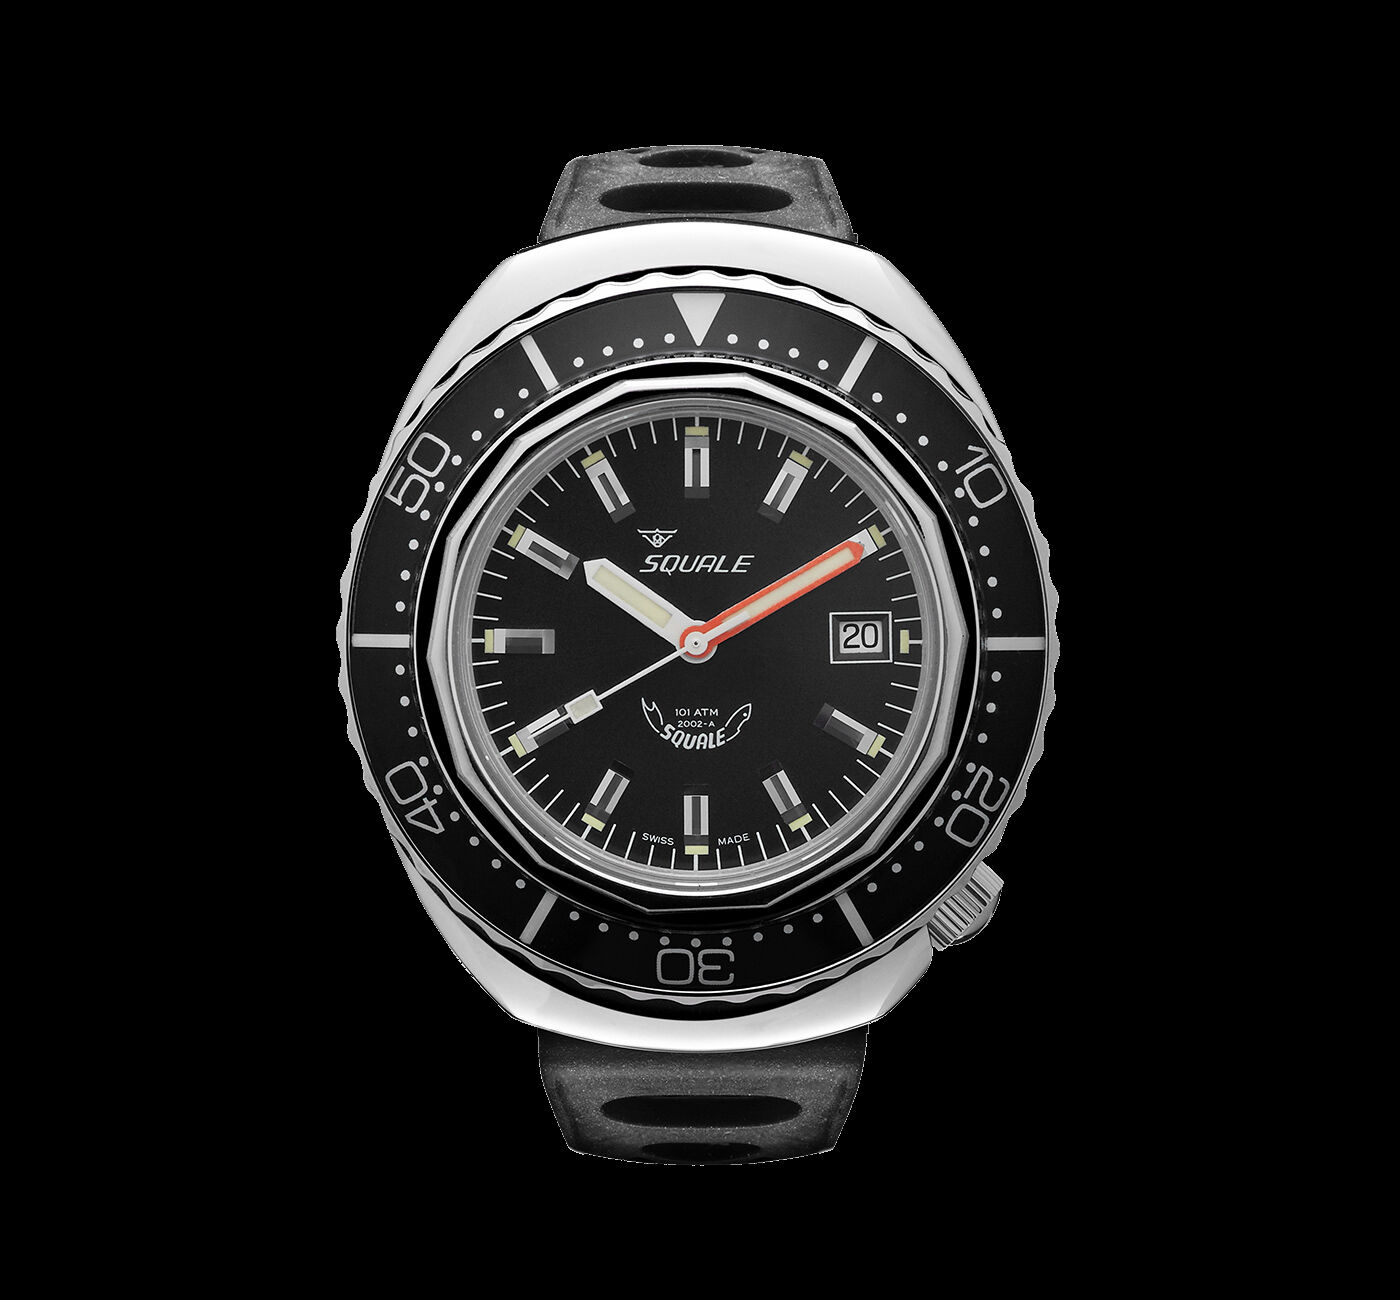 Squale 101 atmos 2002 Black Polished Dive Watch